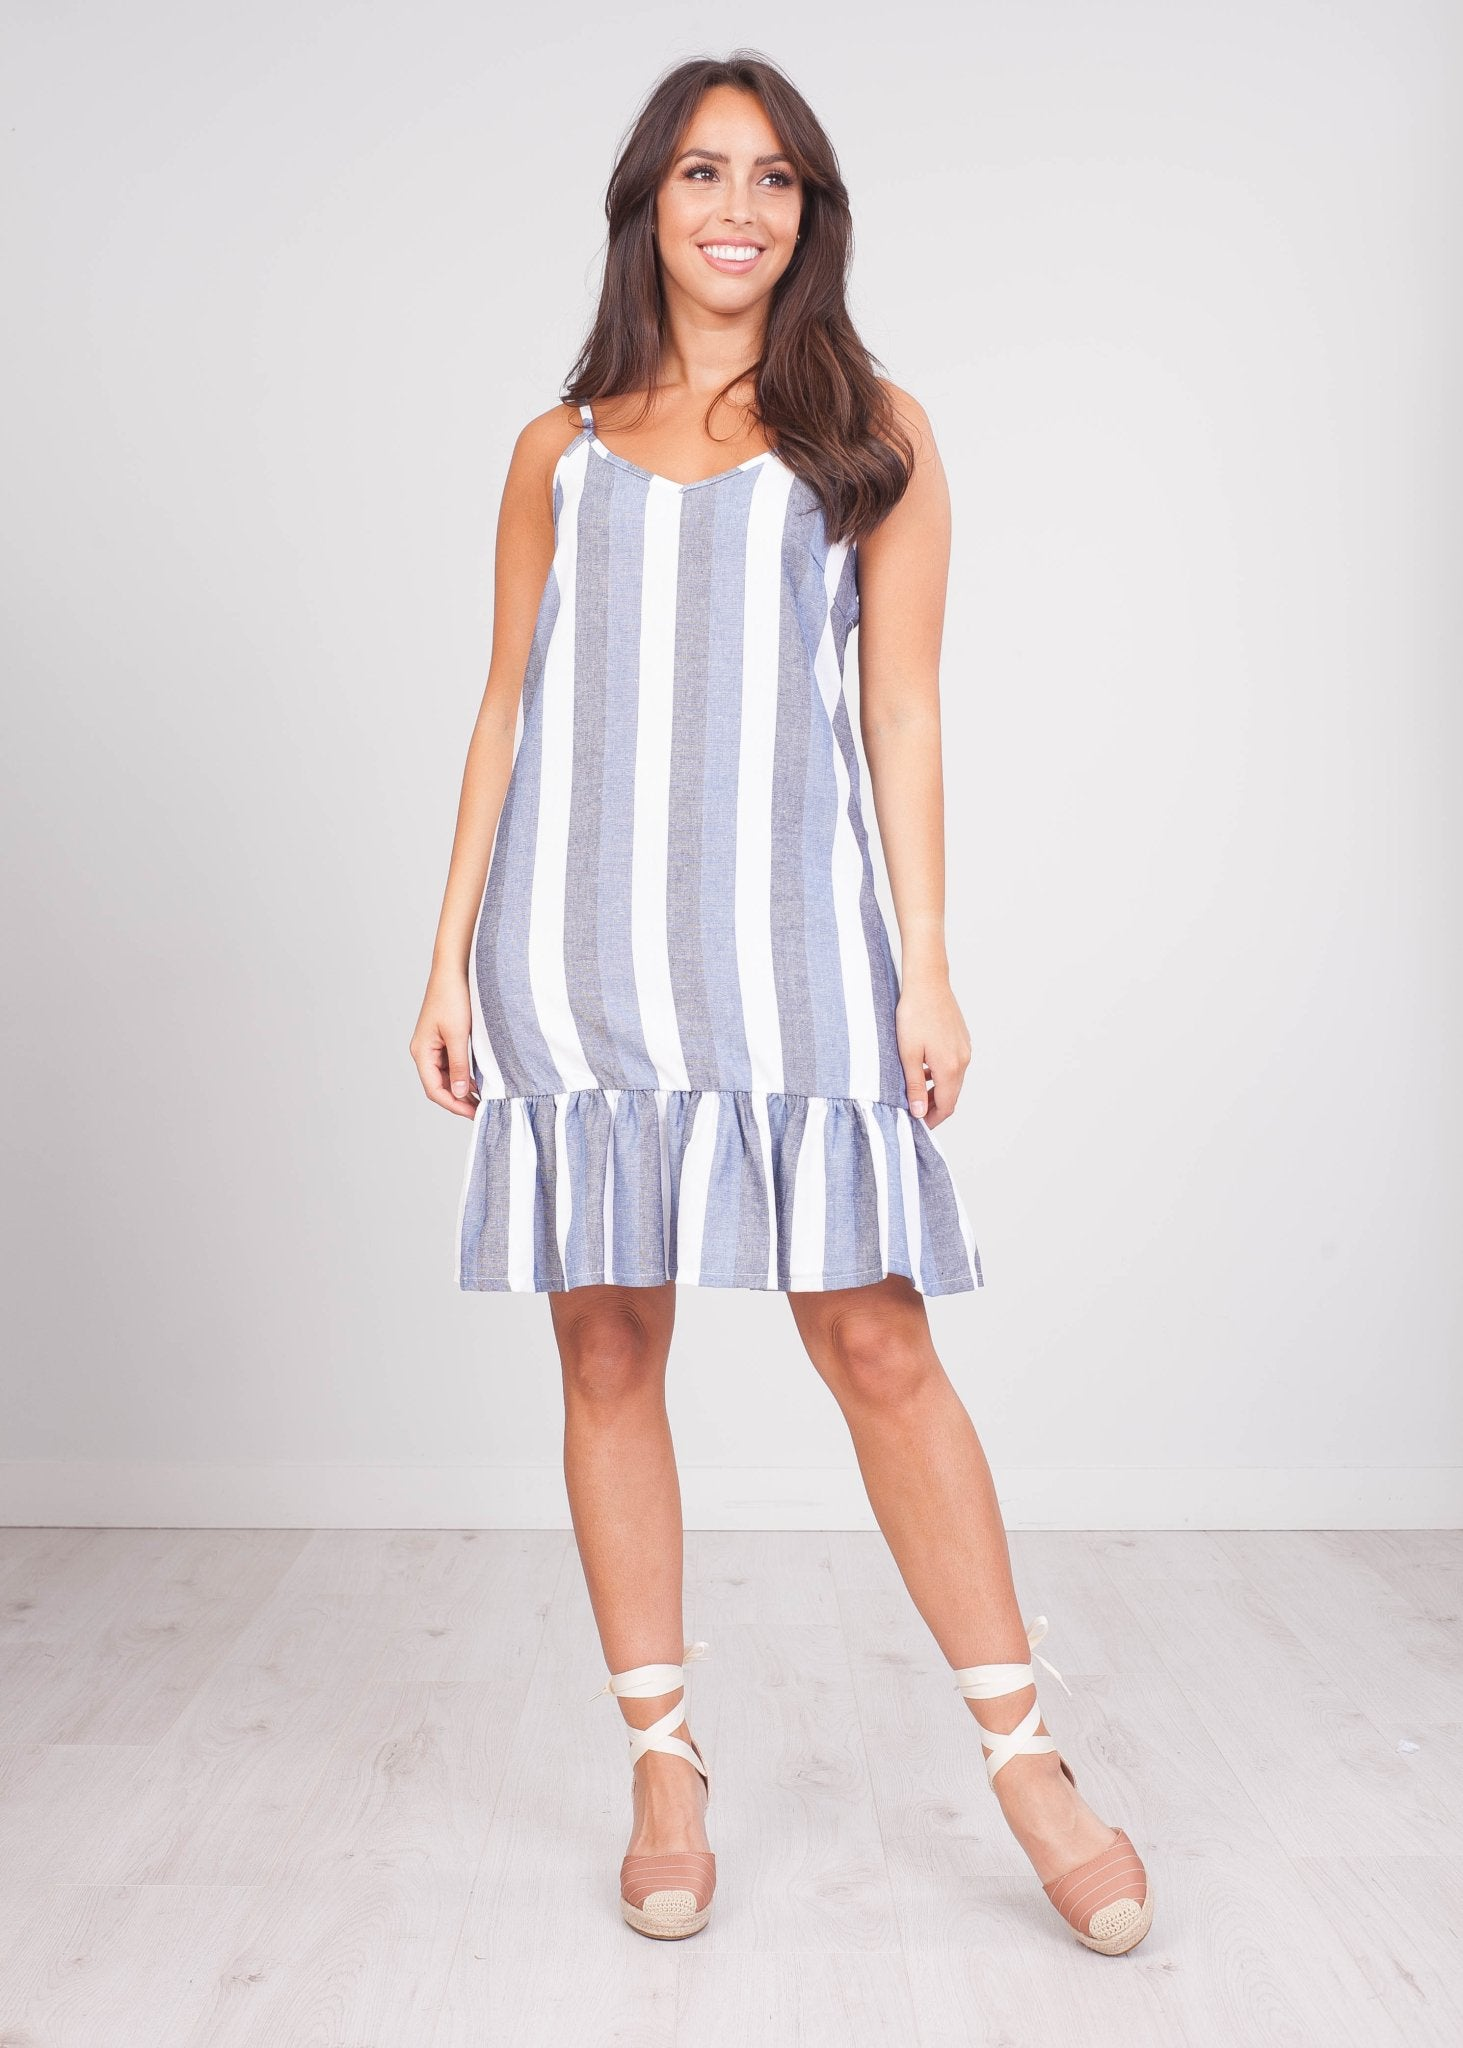 Sissy Stripe Dress - The Walk in Wardrobe